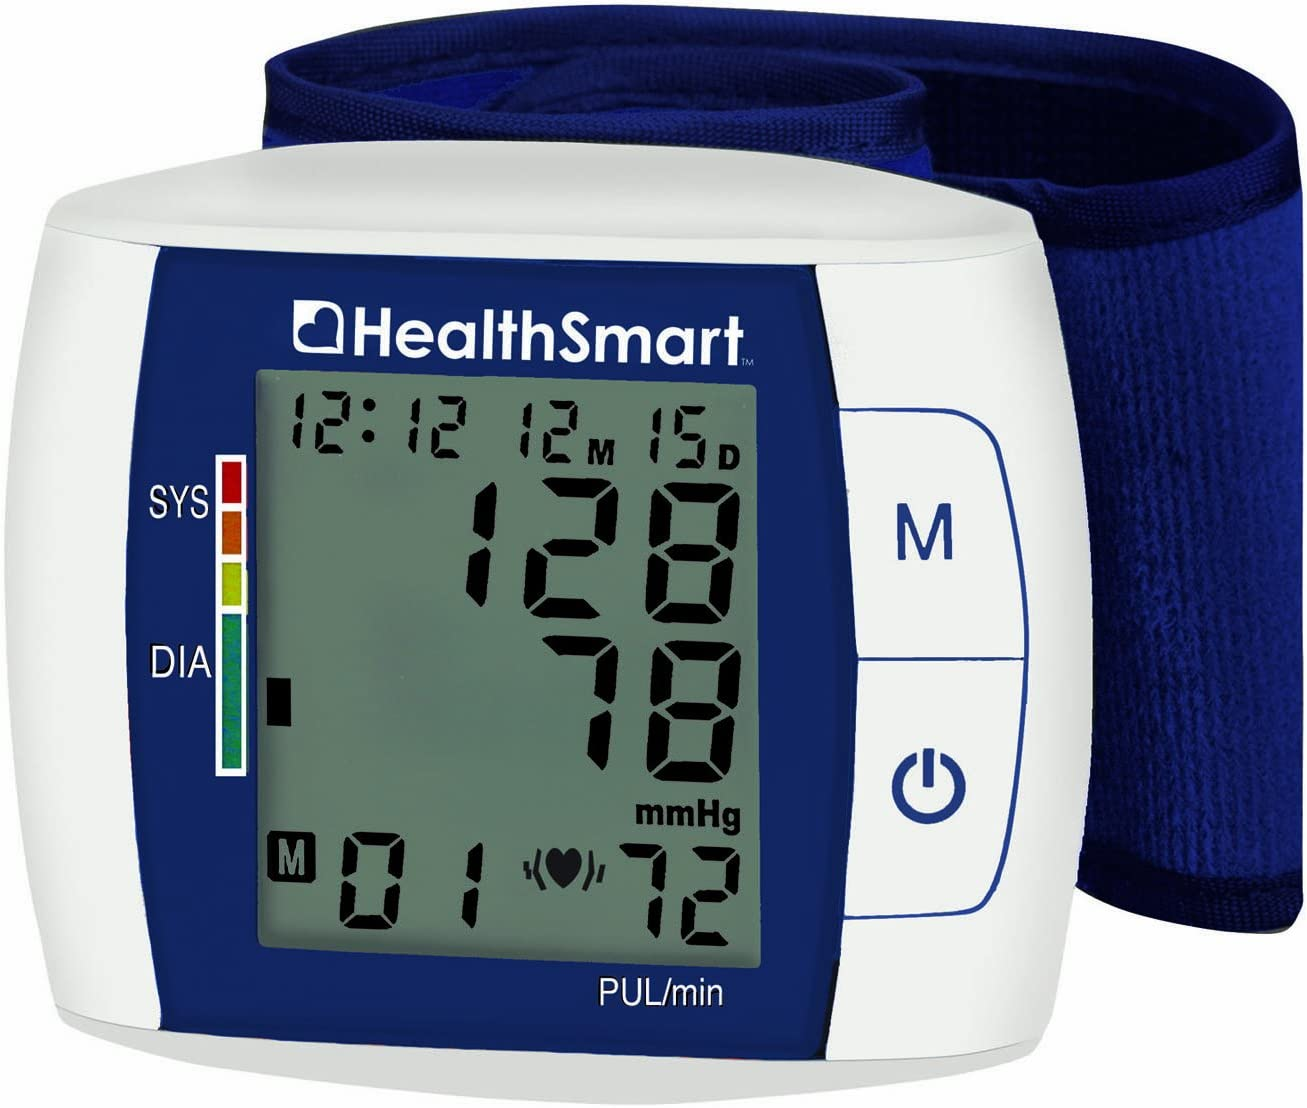 HealthSmart Premium Talking Digital Wrist Blood Pressure Monitor, Bilingual, Two-User Memory, Blue